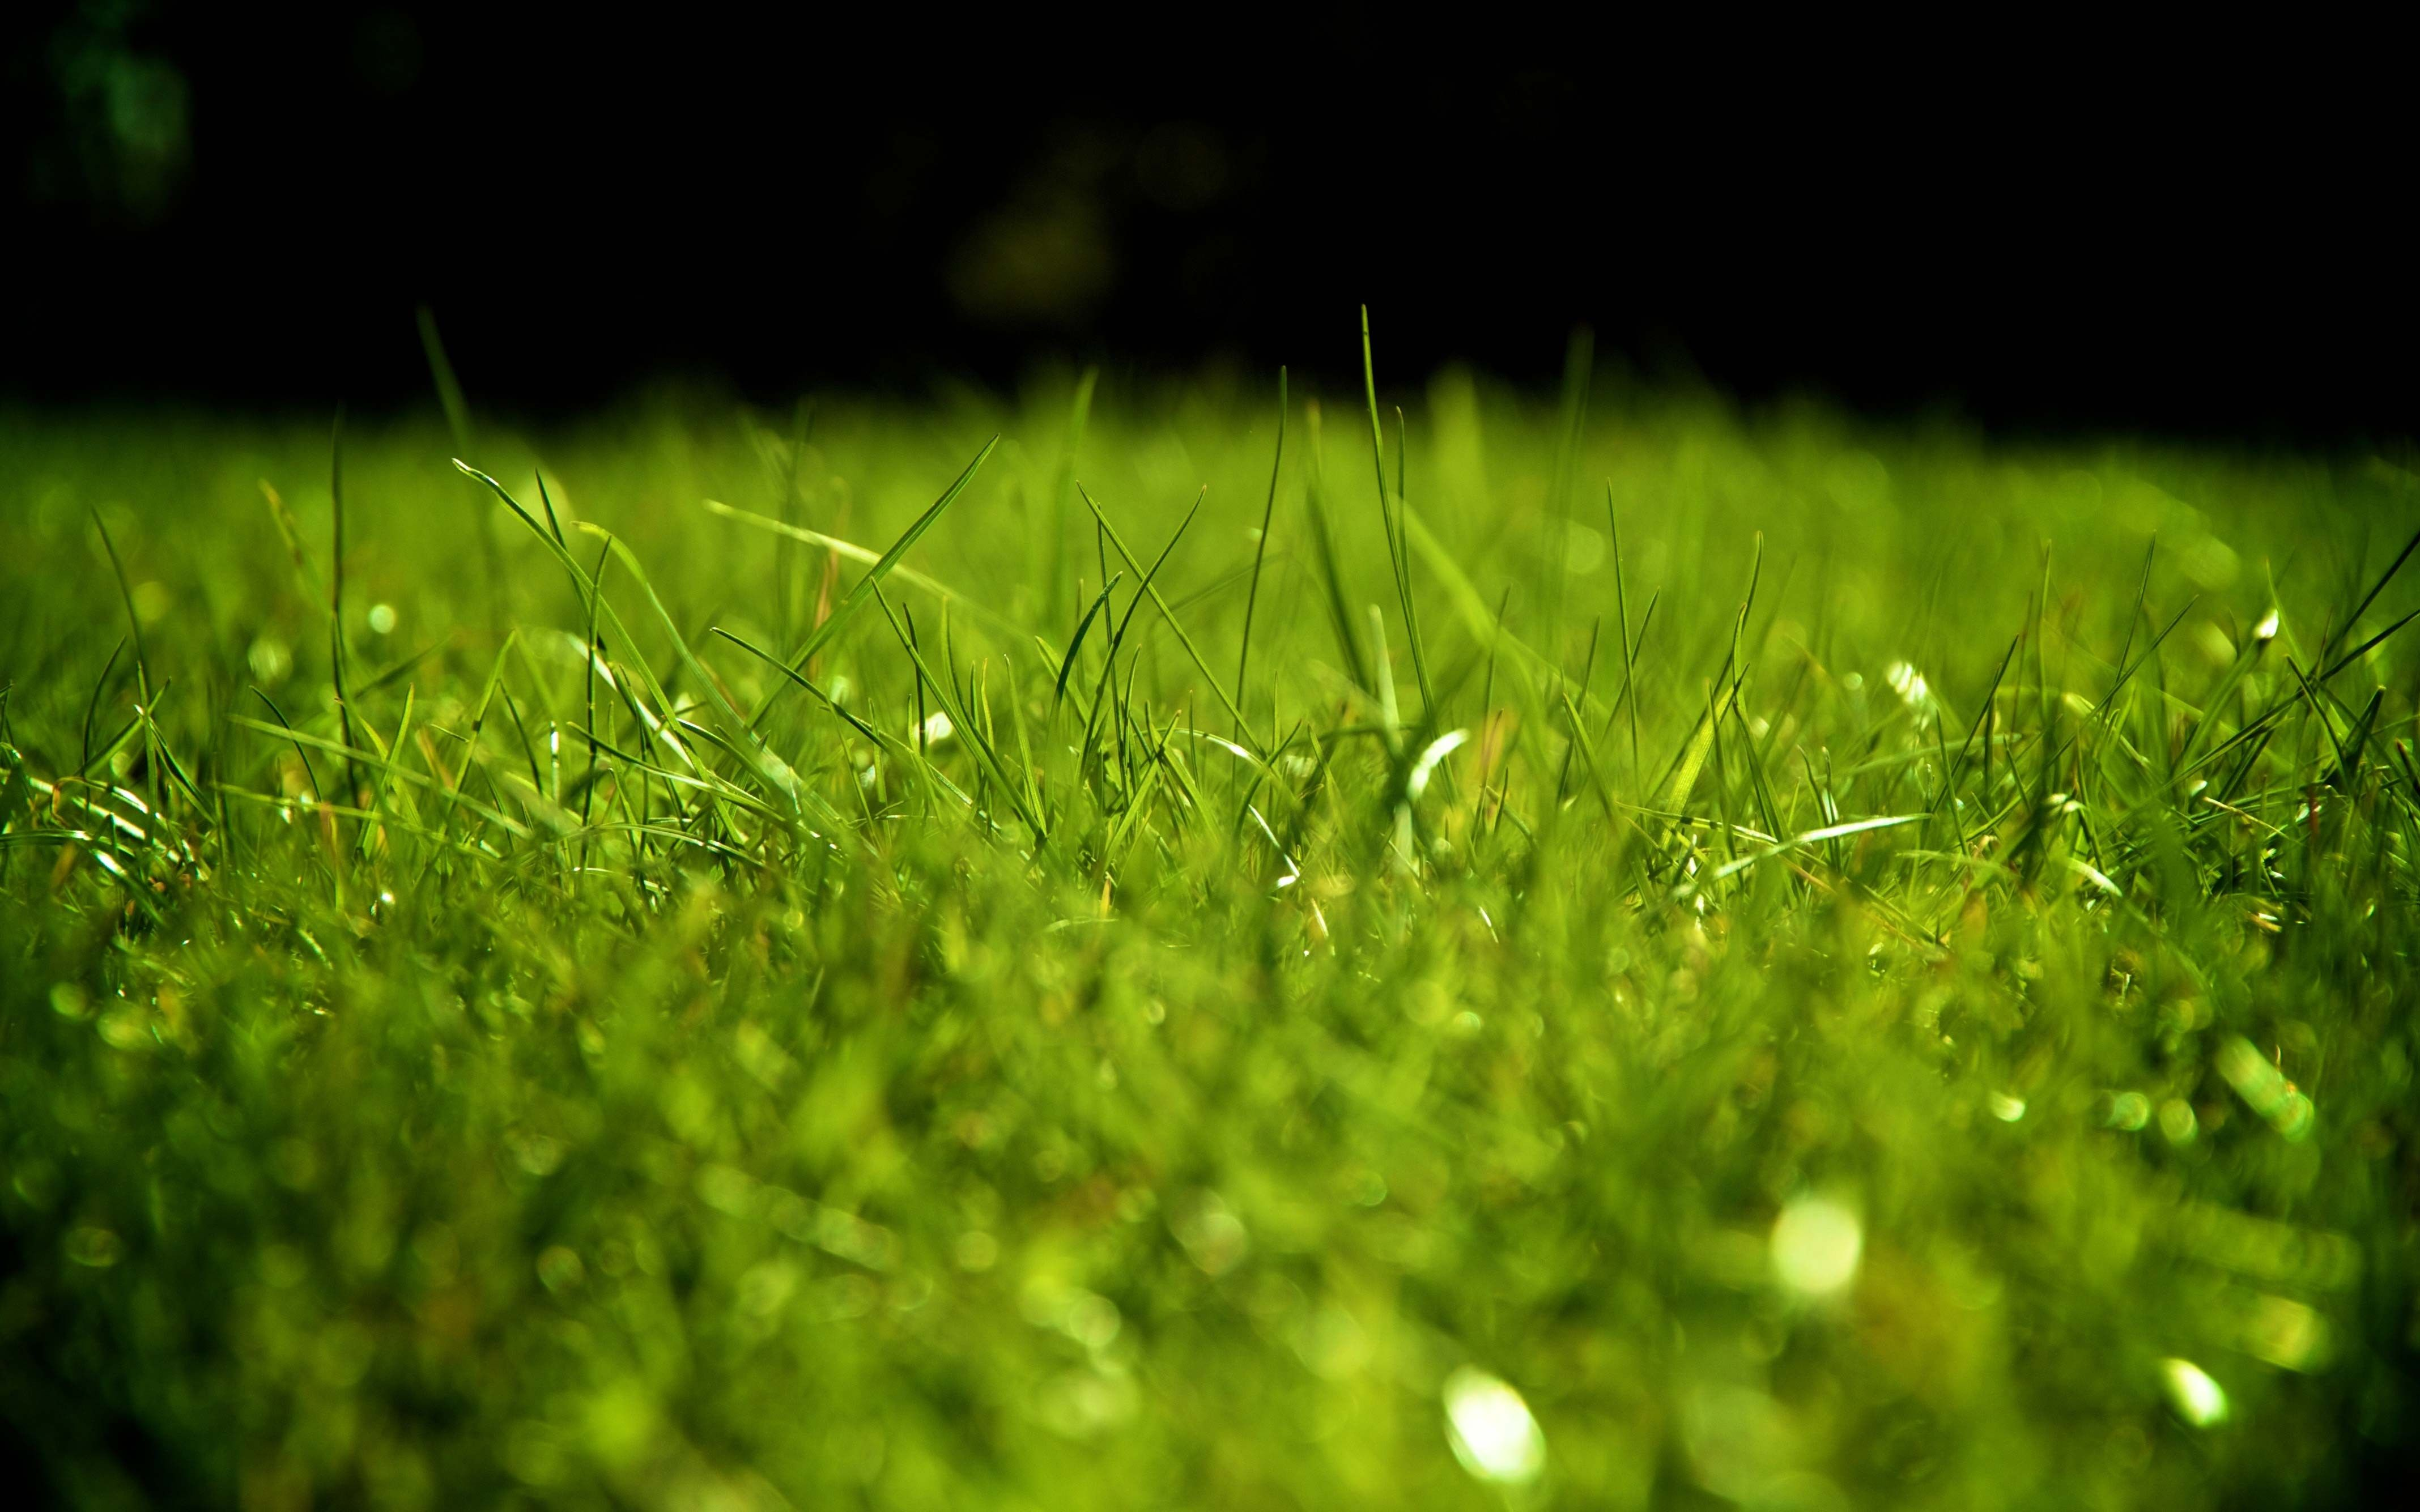 Hd Wallpaper Grass Backgrounds